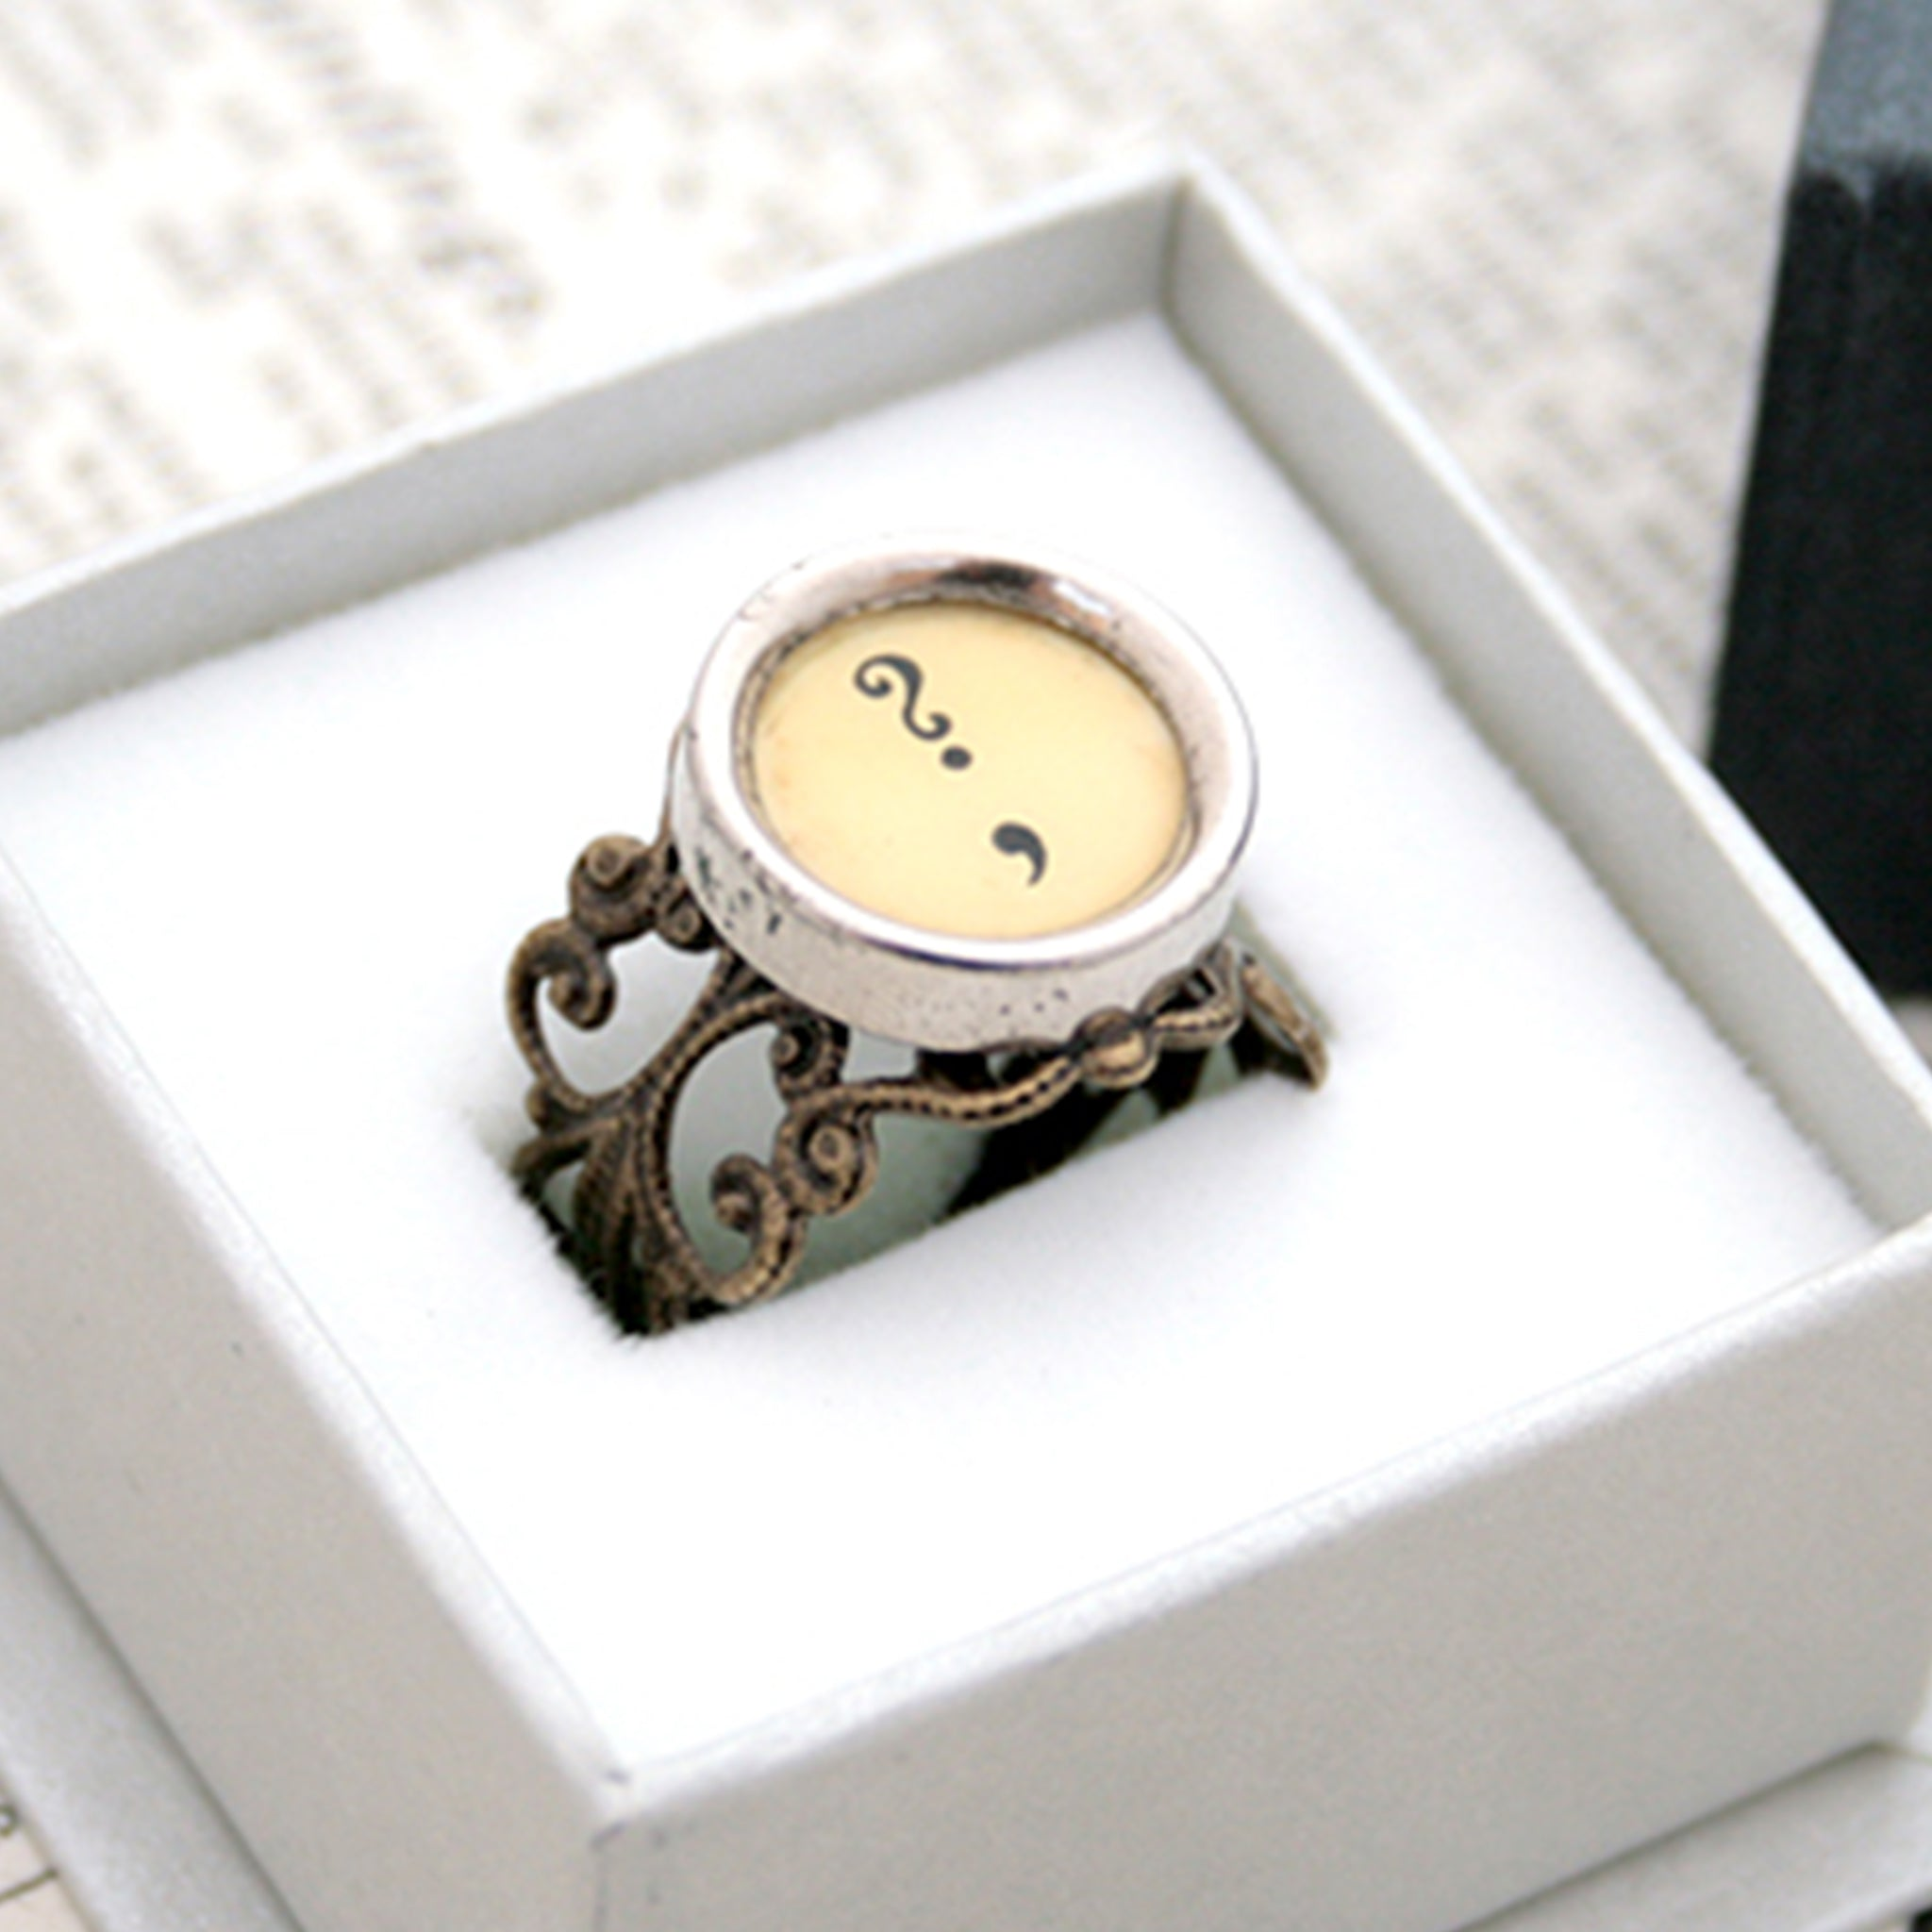 Ring with question mark and comma made of  typewriter key in ivory color in a box